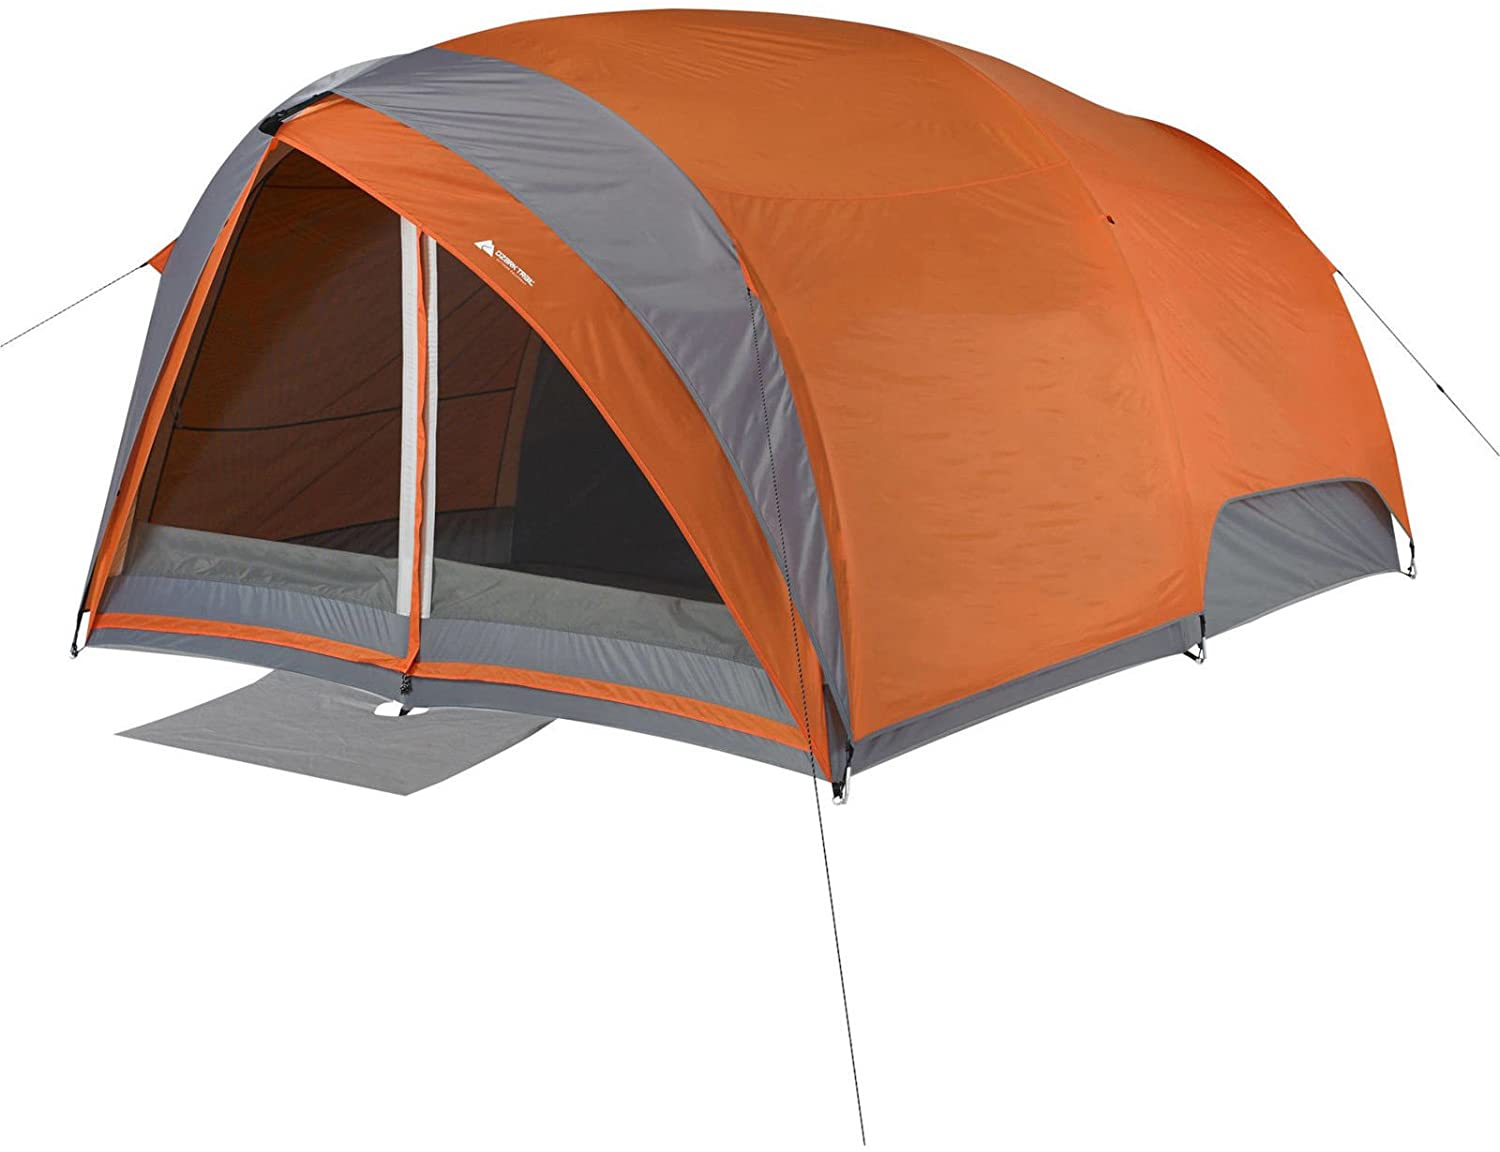 Best Ozark Trail Tents For The Money In 2020 Reviews 31